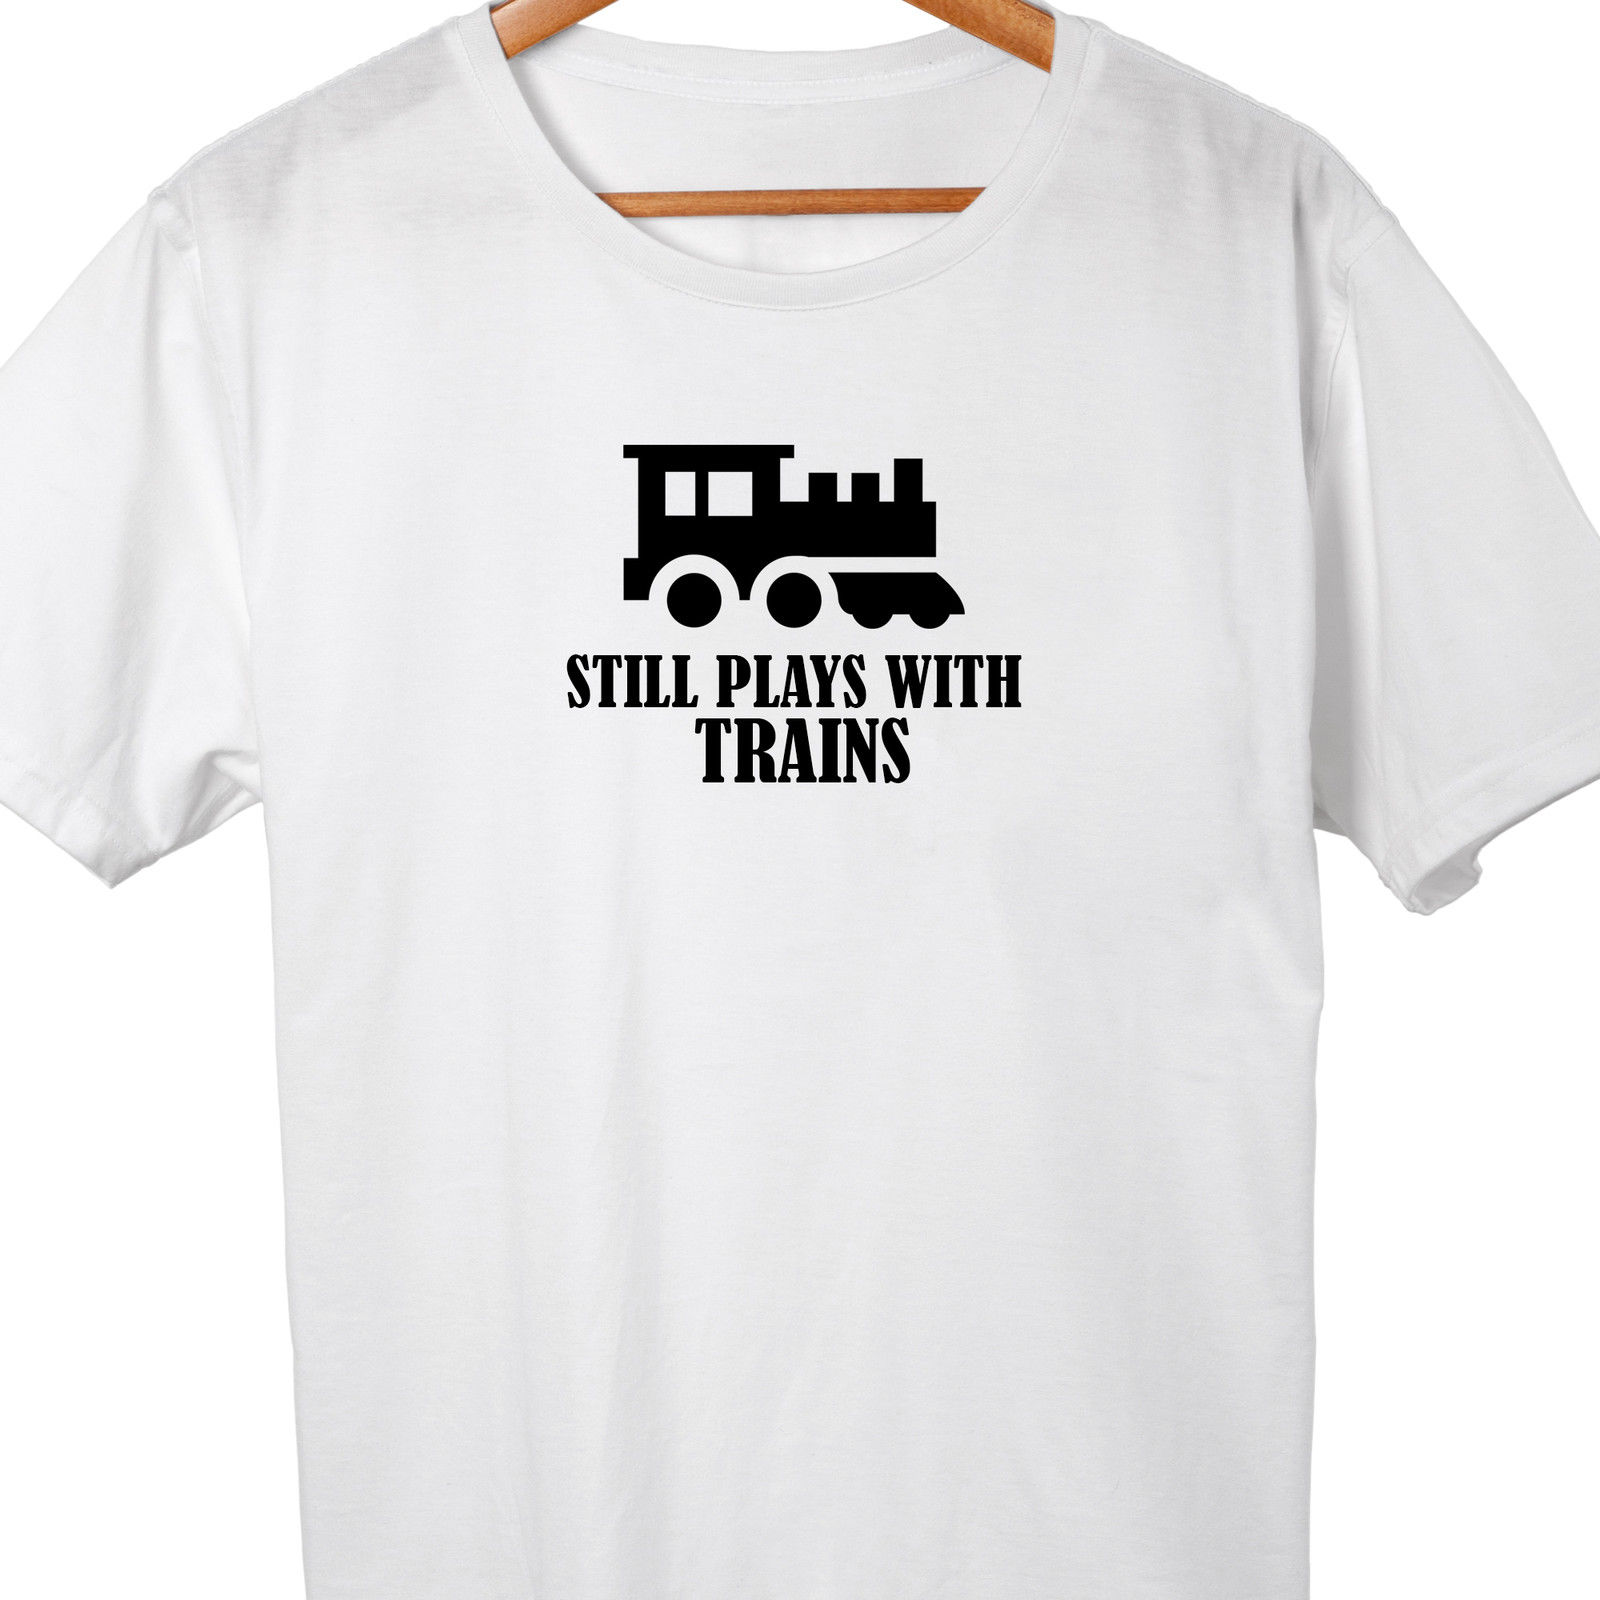 Still Plays With Trains T-shirt Funny Railway Train Driver Comedy Gift birthday